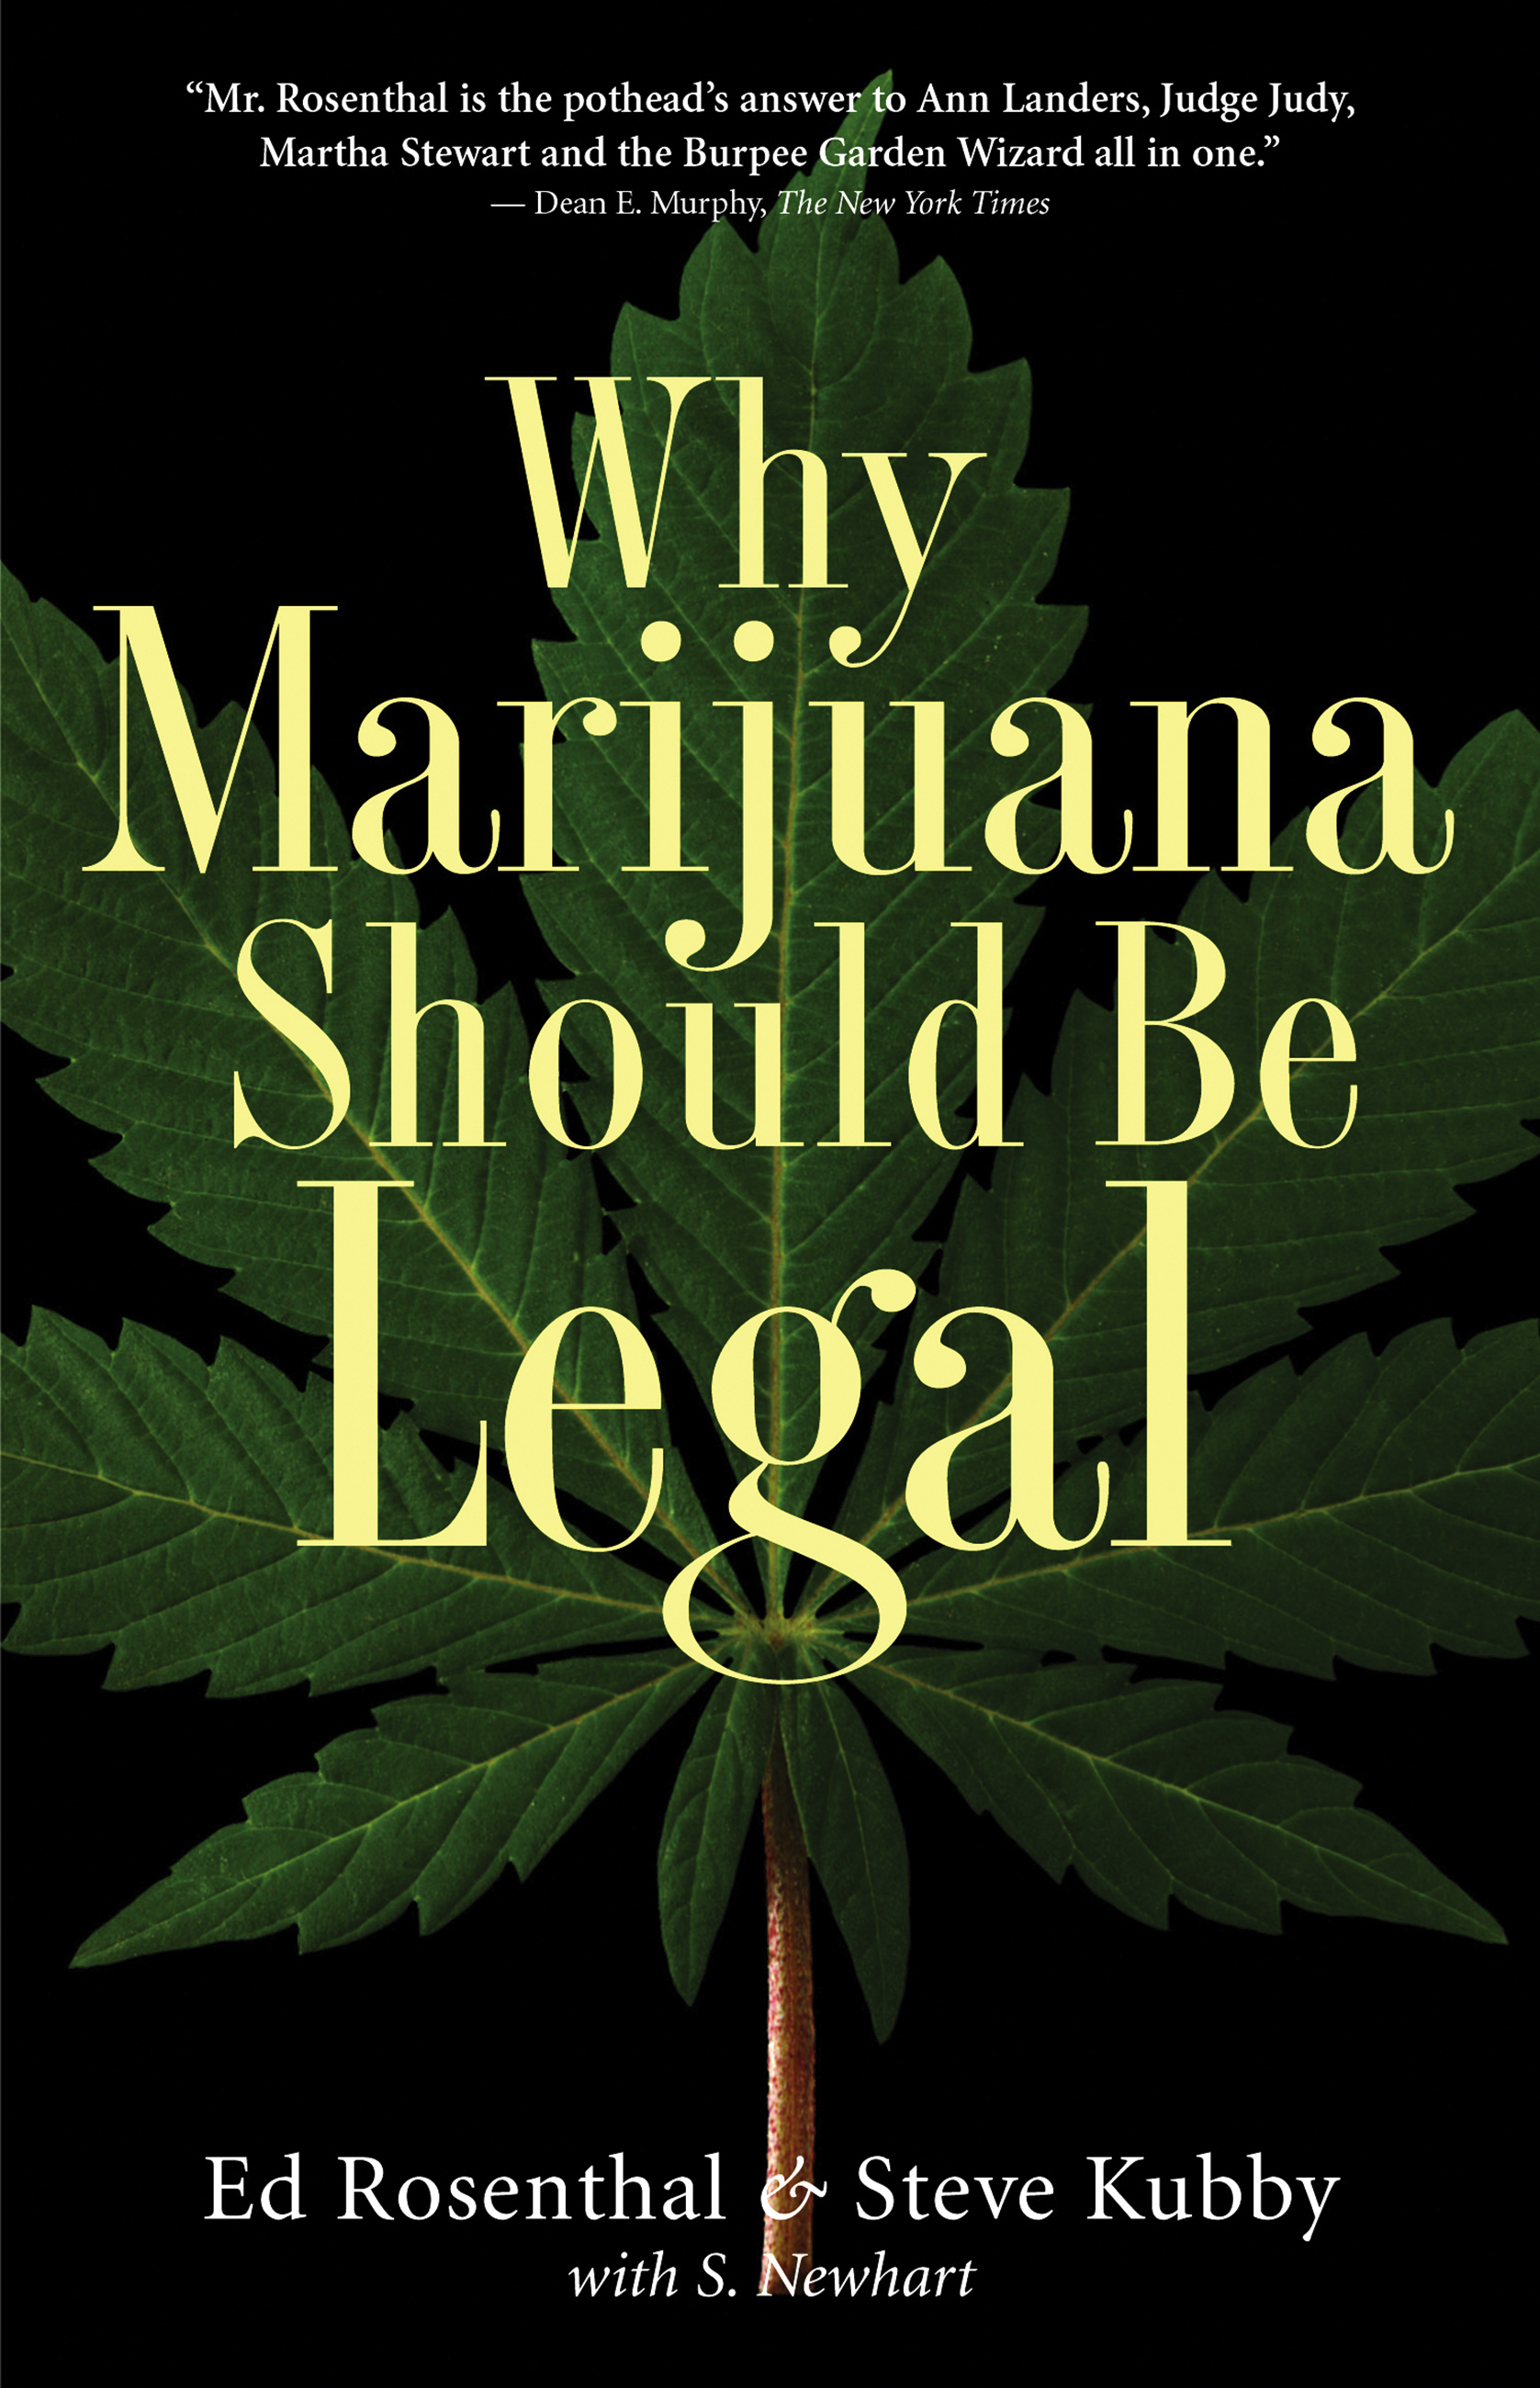 the reasons why we should consider legalizing marijuana Because of the recent focus on marijuana legalization, many people are looking back to why cannabis was criminalized in the first place contrary to popular belief, the reason marijuana was made illegal had nothing to do with health issues.